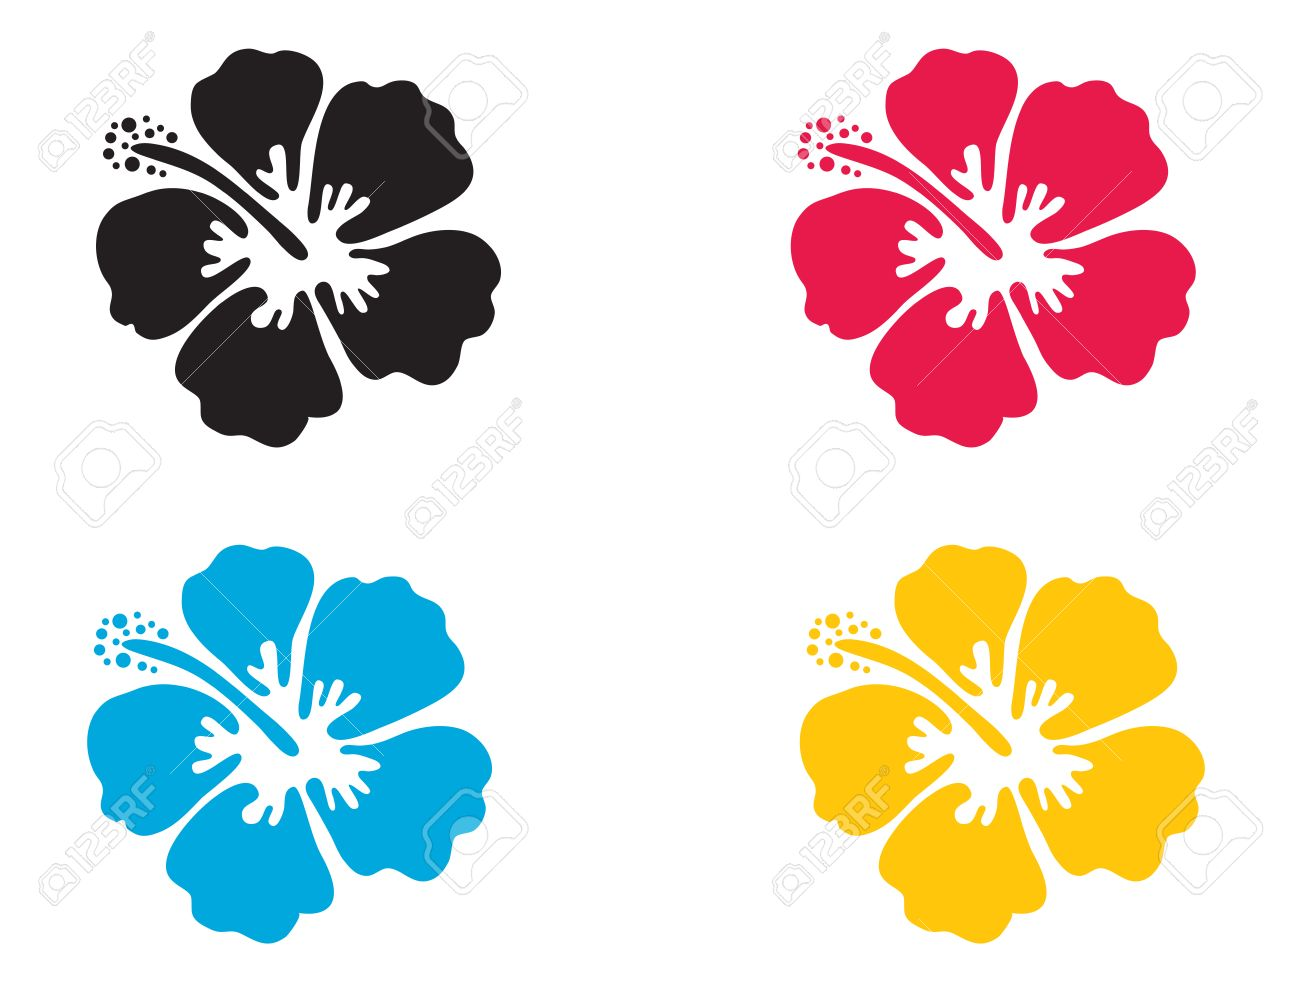 Hibiscus flower. Vector illustration. Hibiscus icon in 4 colors - blue, black, red and yellow. Summer tropical flower symbol - 58012547